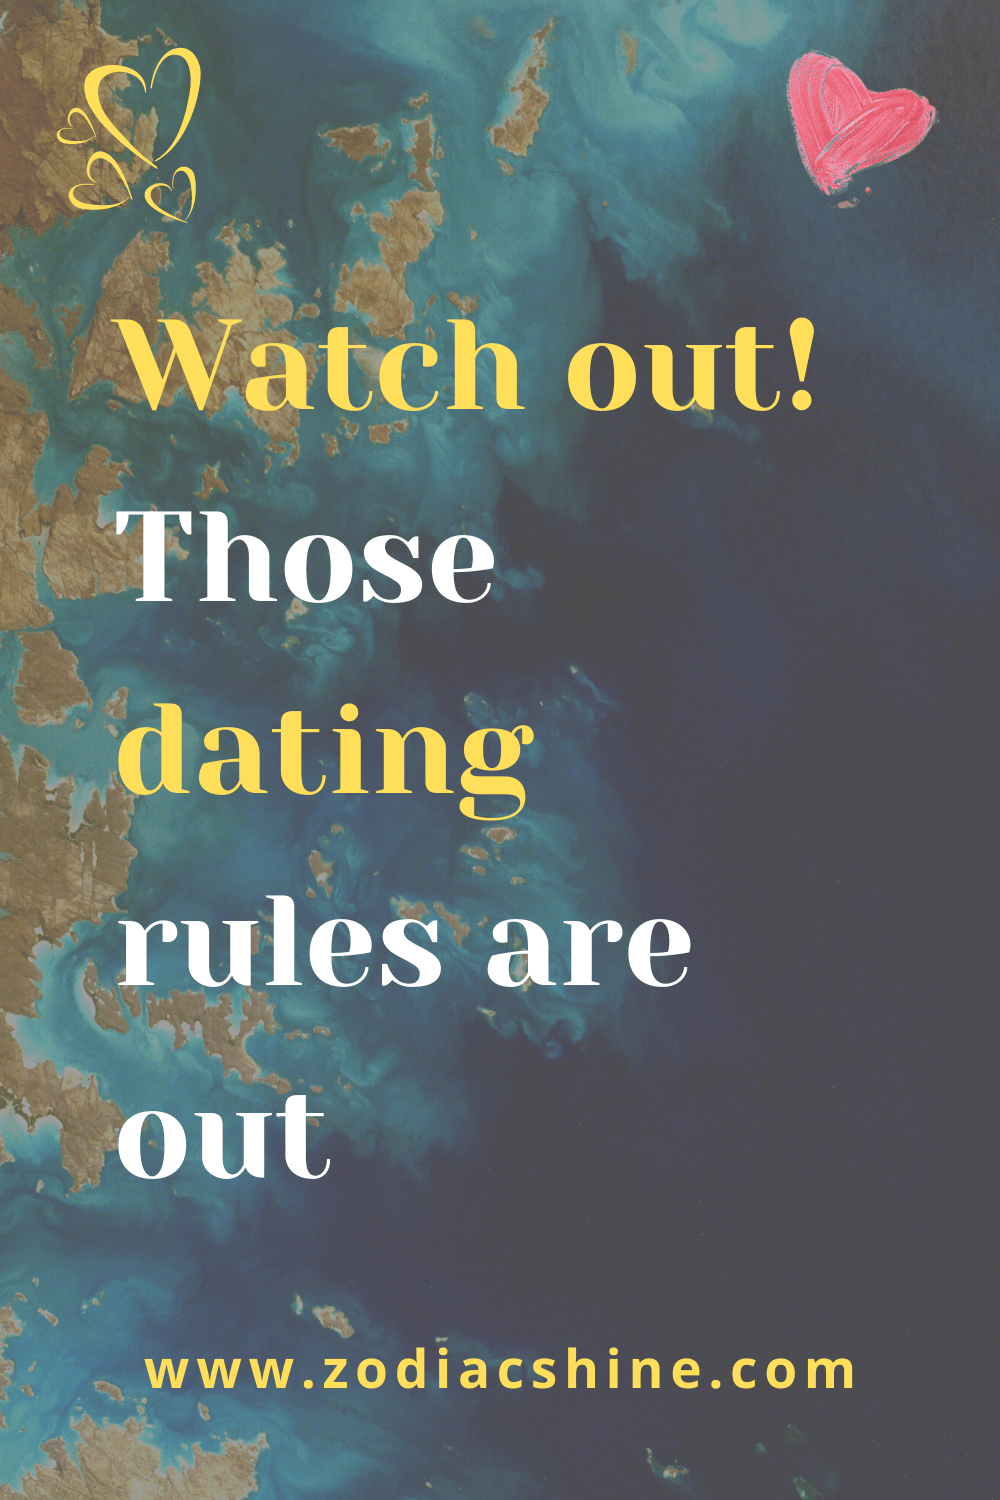 Watch out! Those dating rules are out